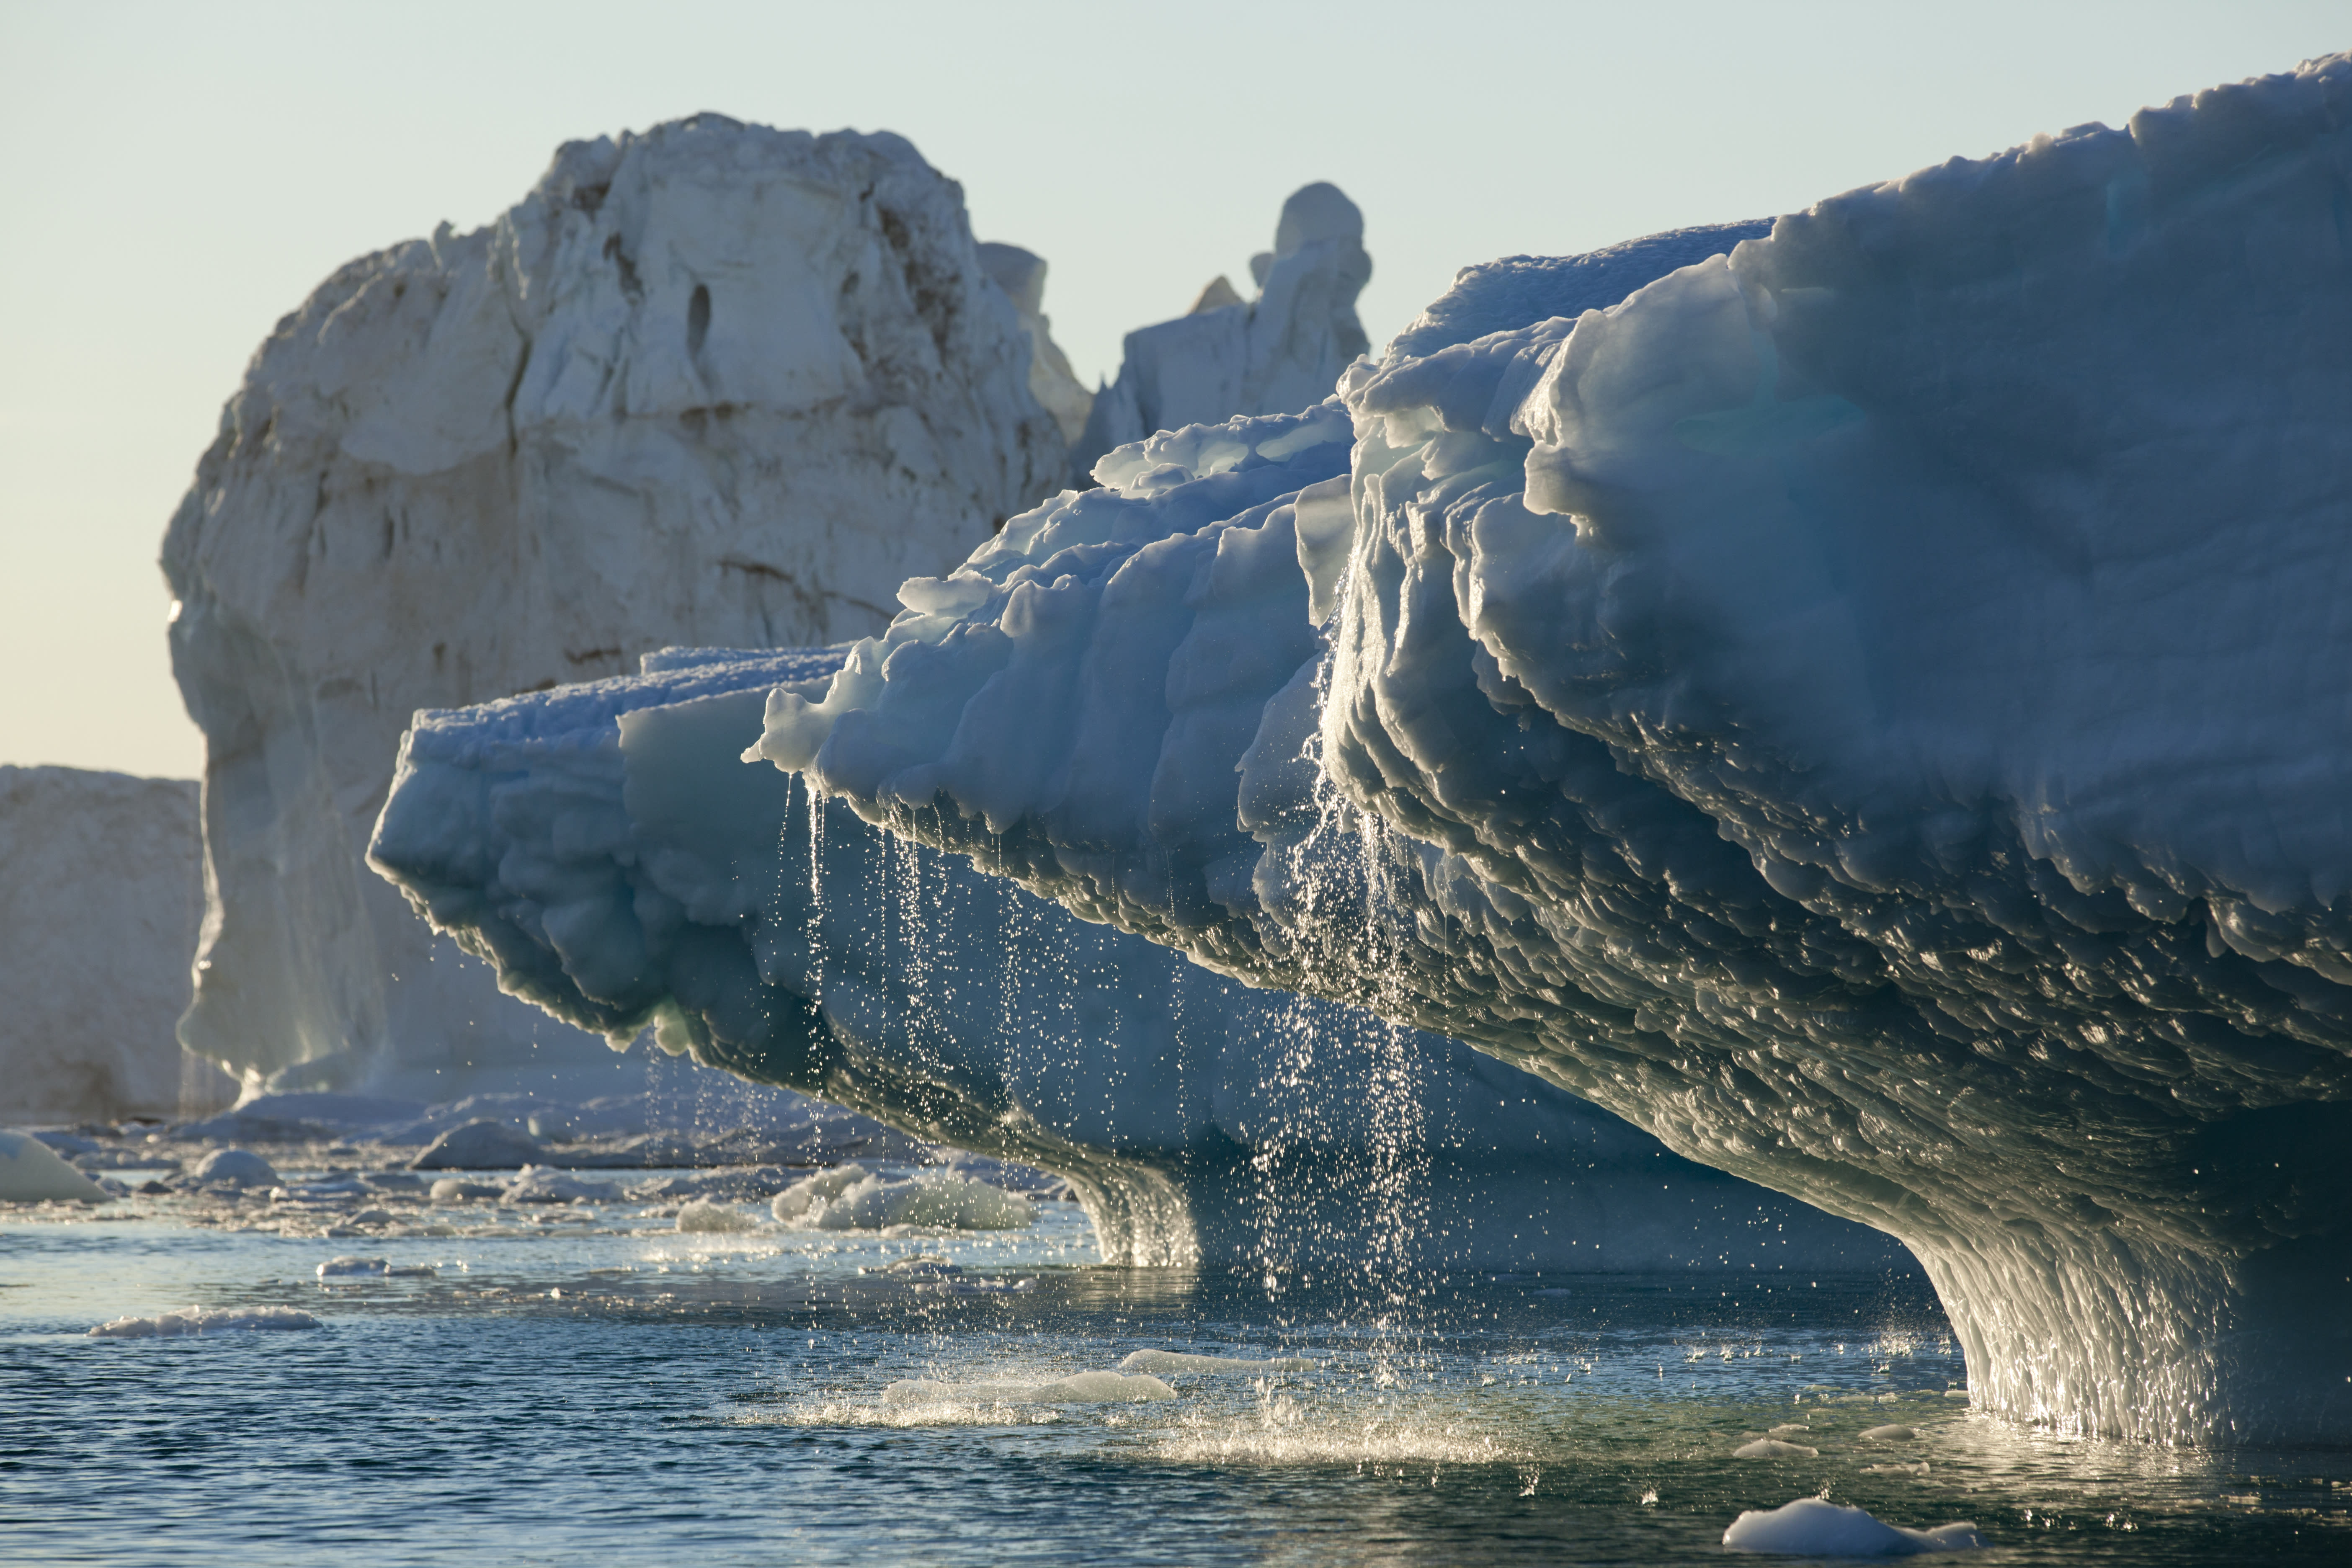 'Staggering' 28 trillion tonnes of ice has vanished from Earth's surface due to global warming – Yahoo News Australia